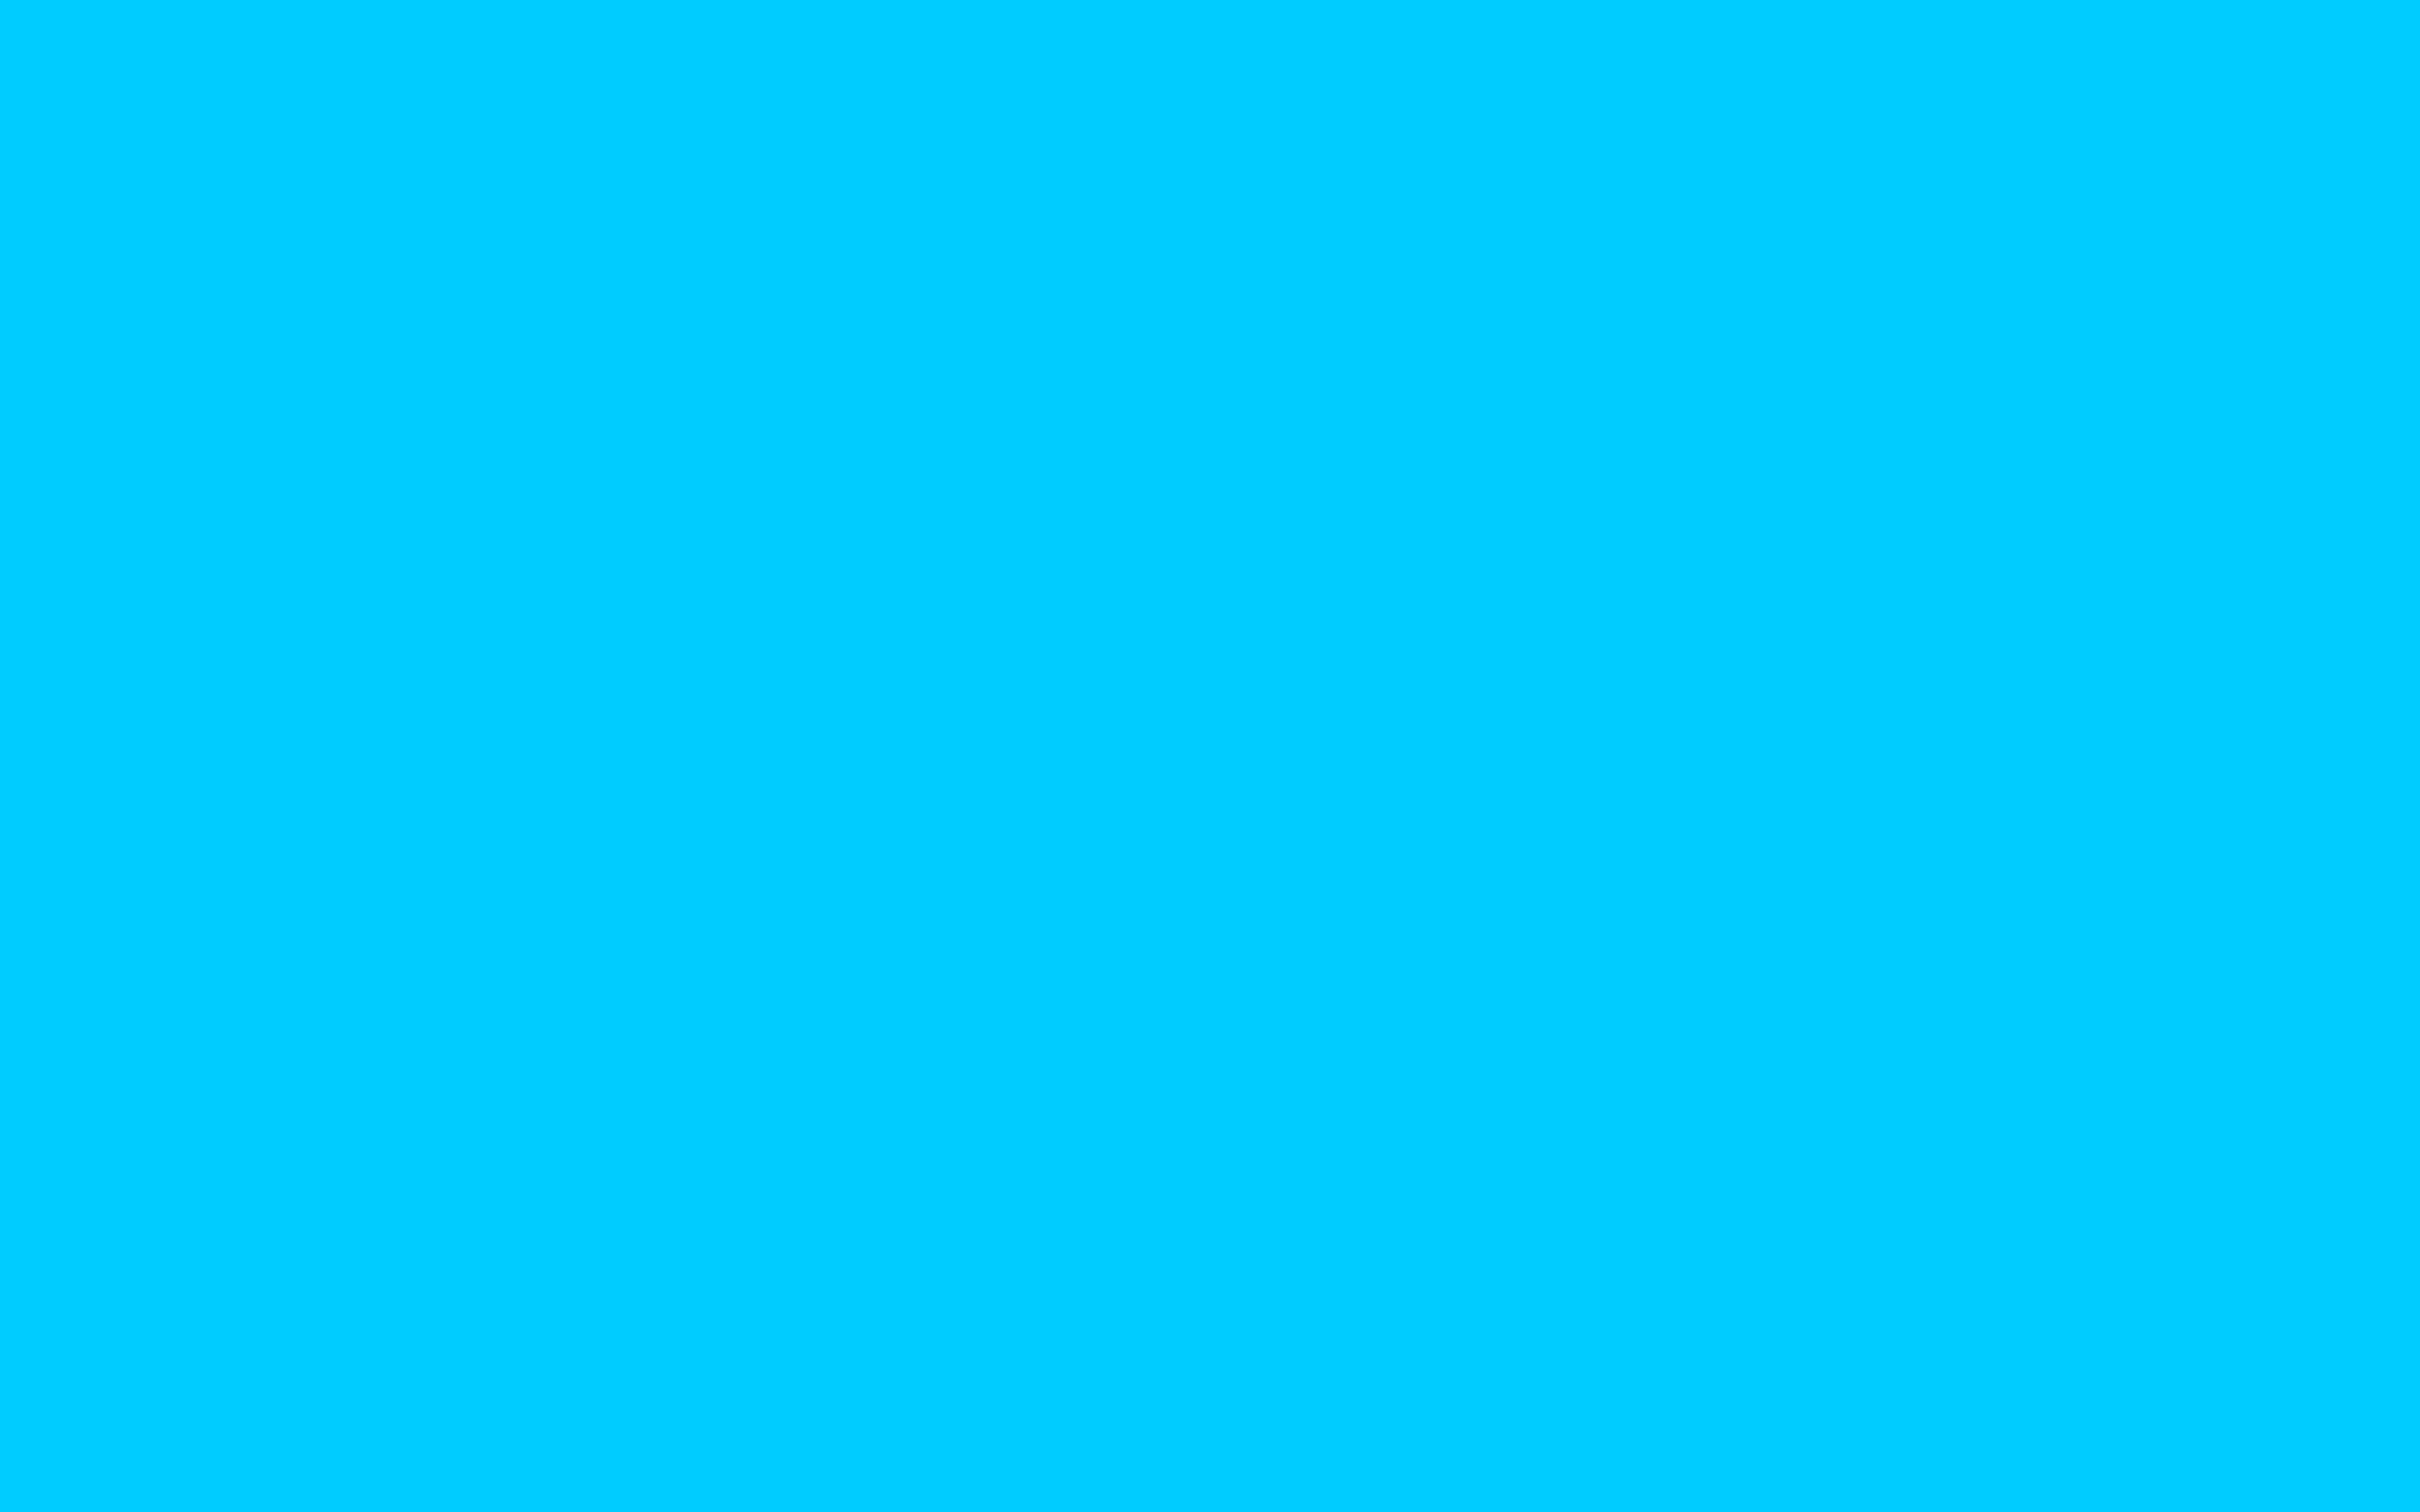 Blue solid color background, view and download the below background .